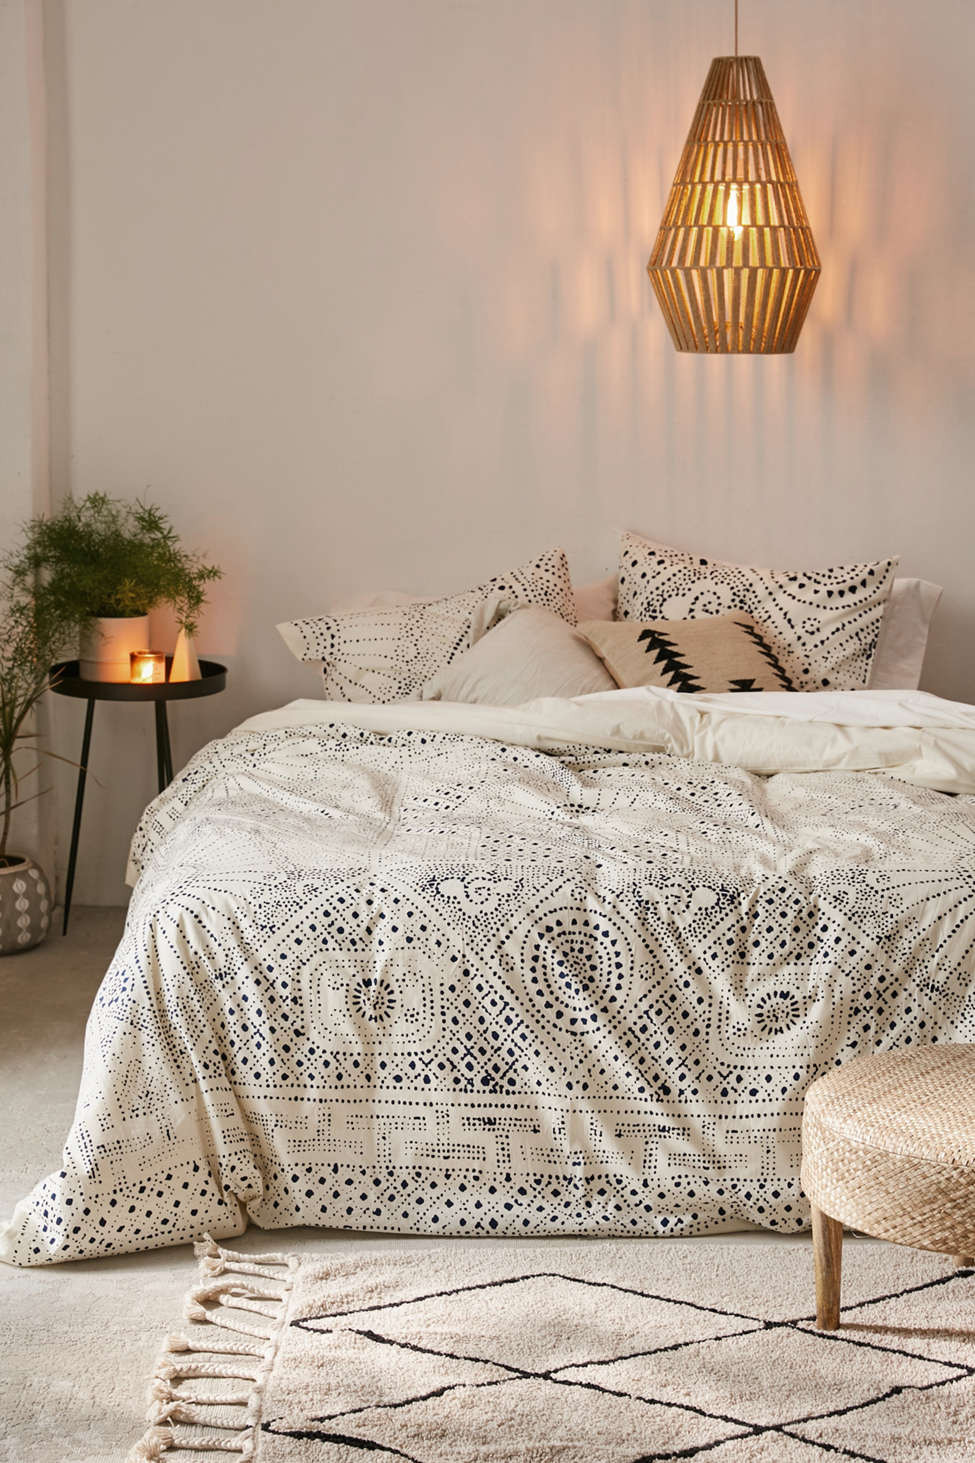 Slide View: 1: Rowan Bandhani Duvet Cover